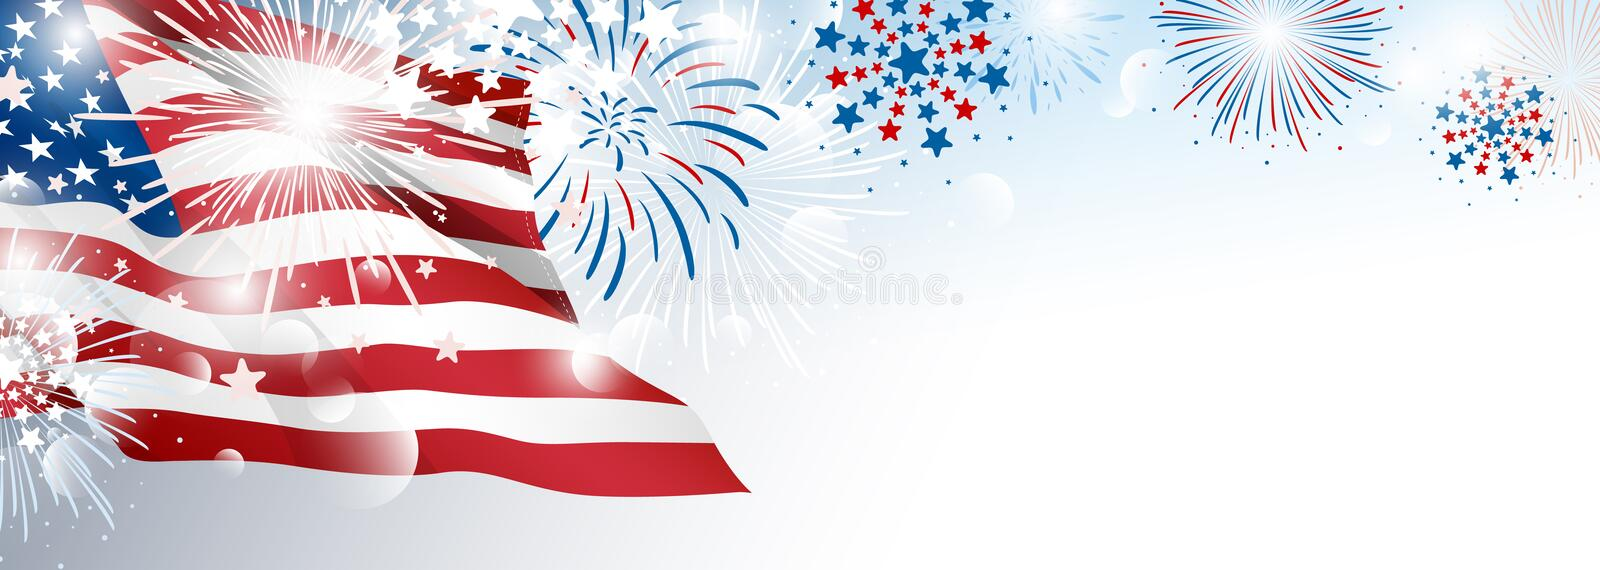 4th of july USA Independence day banner background design of American flag with fireworks royalty free illustration